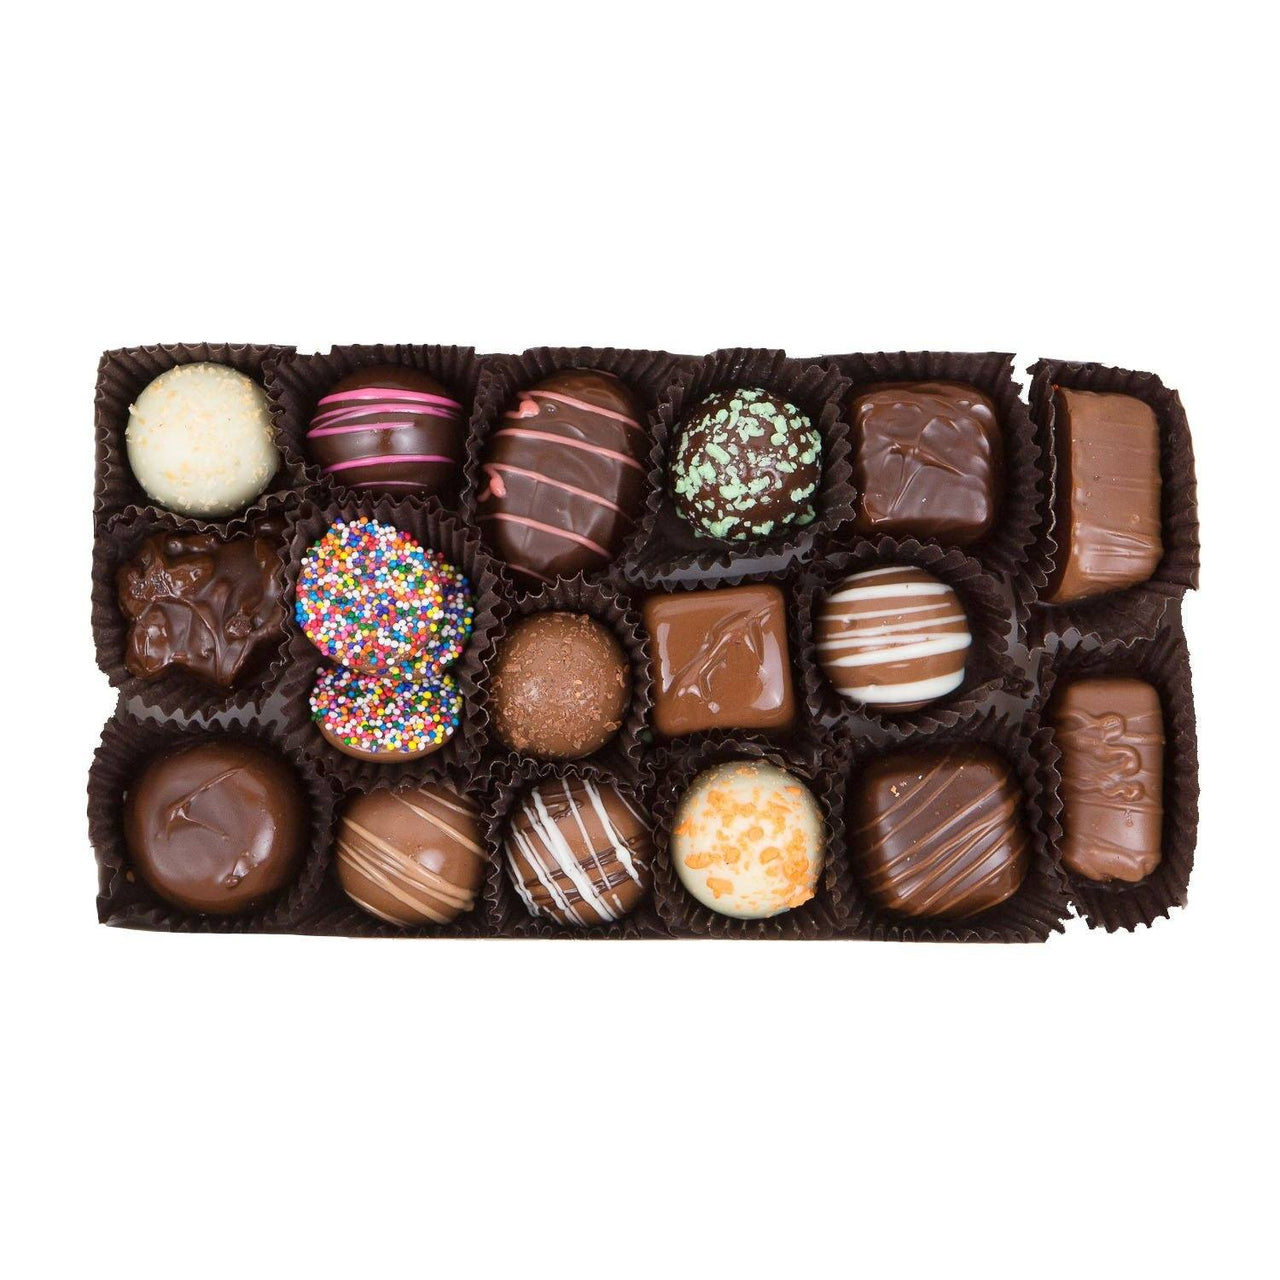 Gifts for Women 2019 - Chocolate Assortment Gift Box - Jackie's Chocolate (4336369827955)